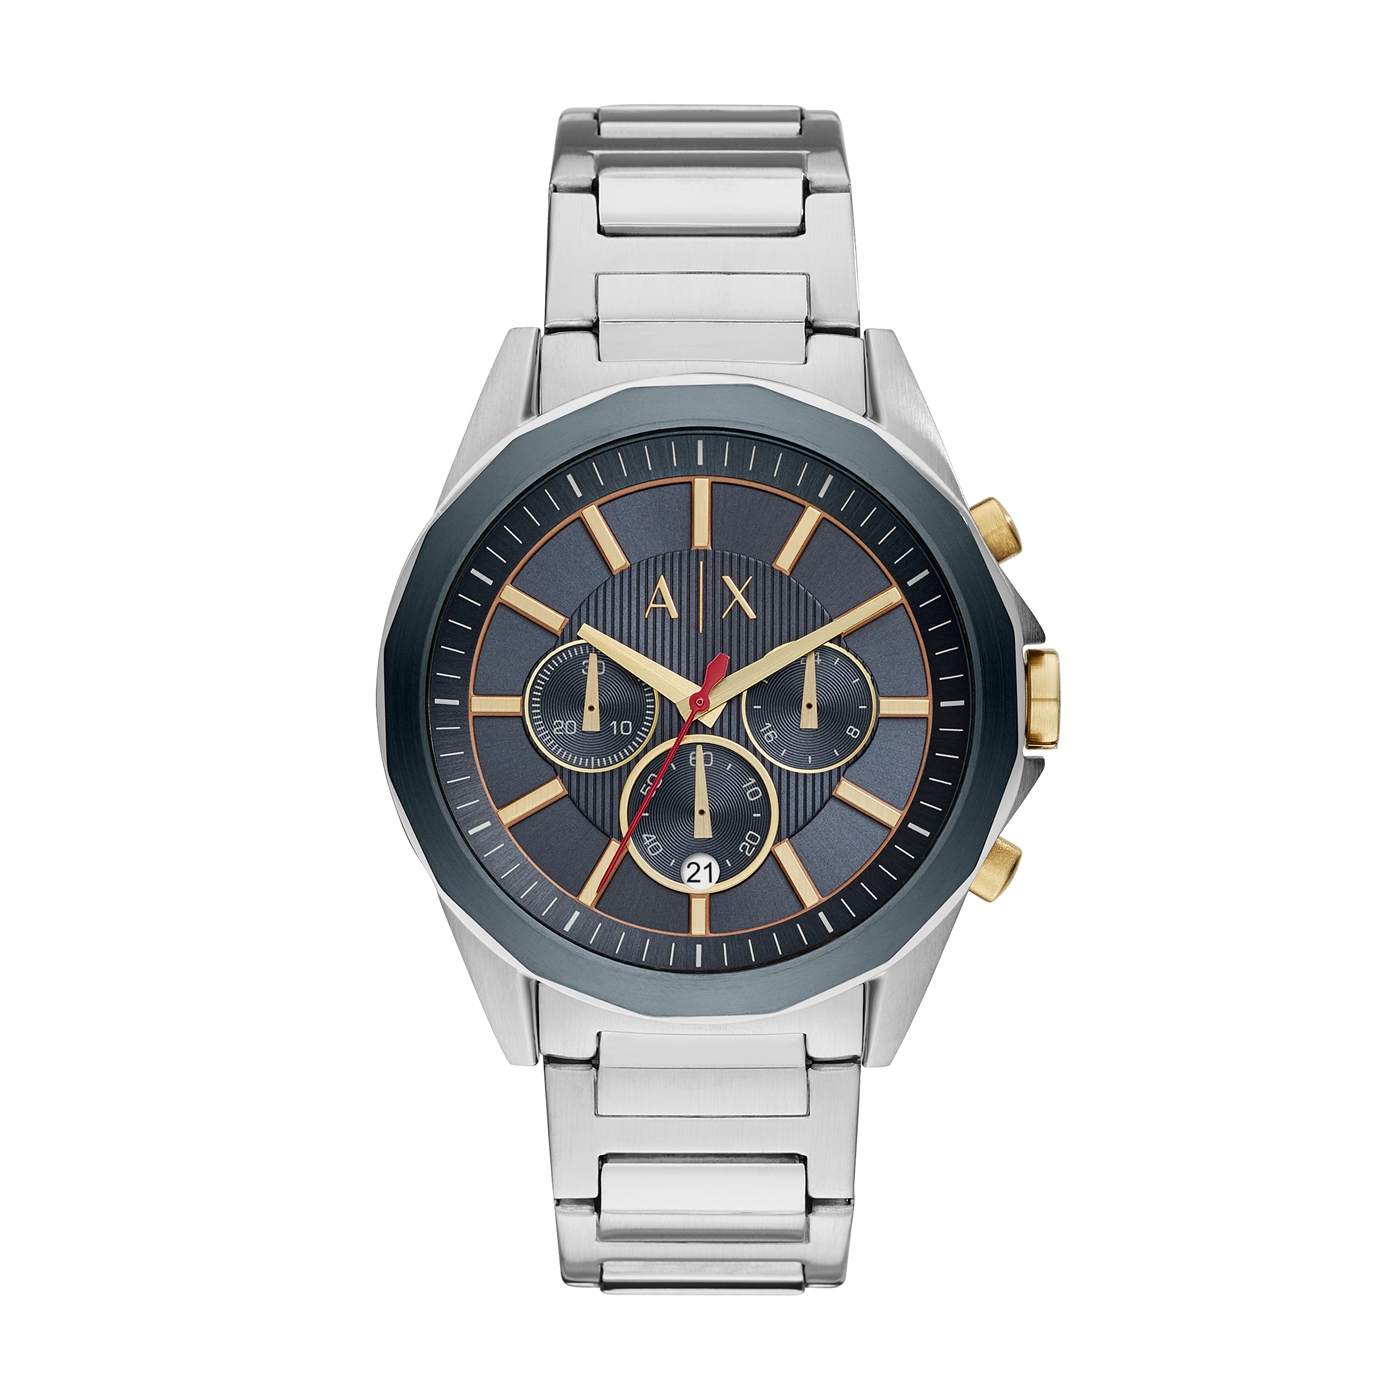 Bilde av Armani Exchange Drexler Watch AX2614